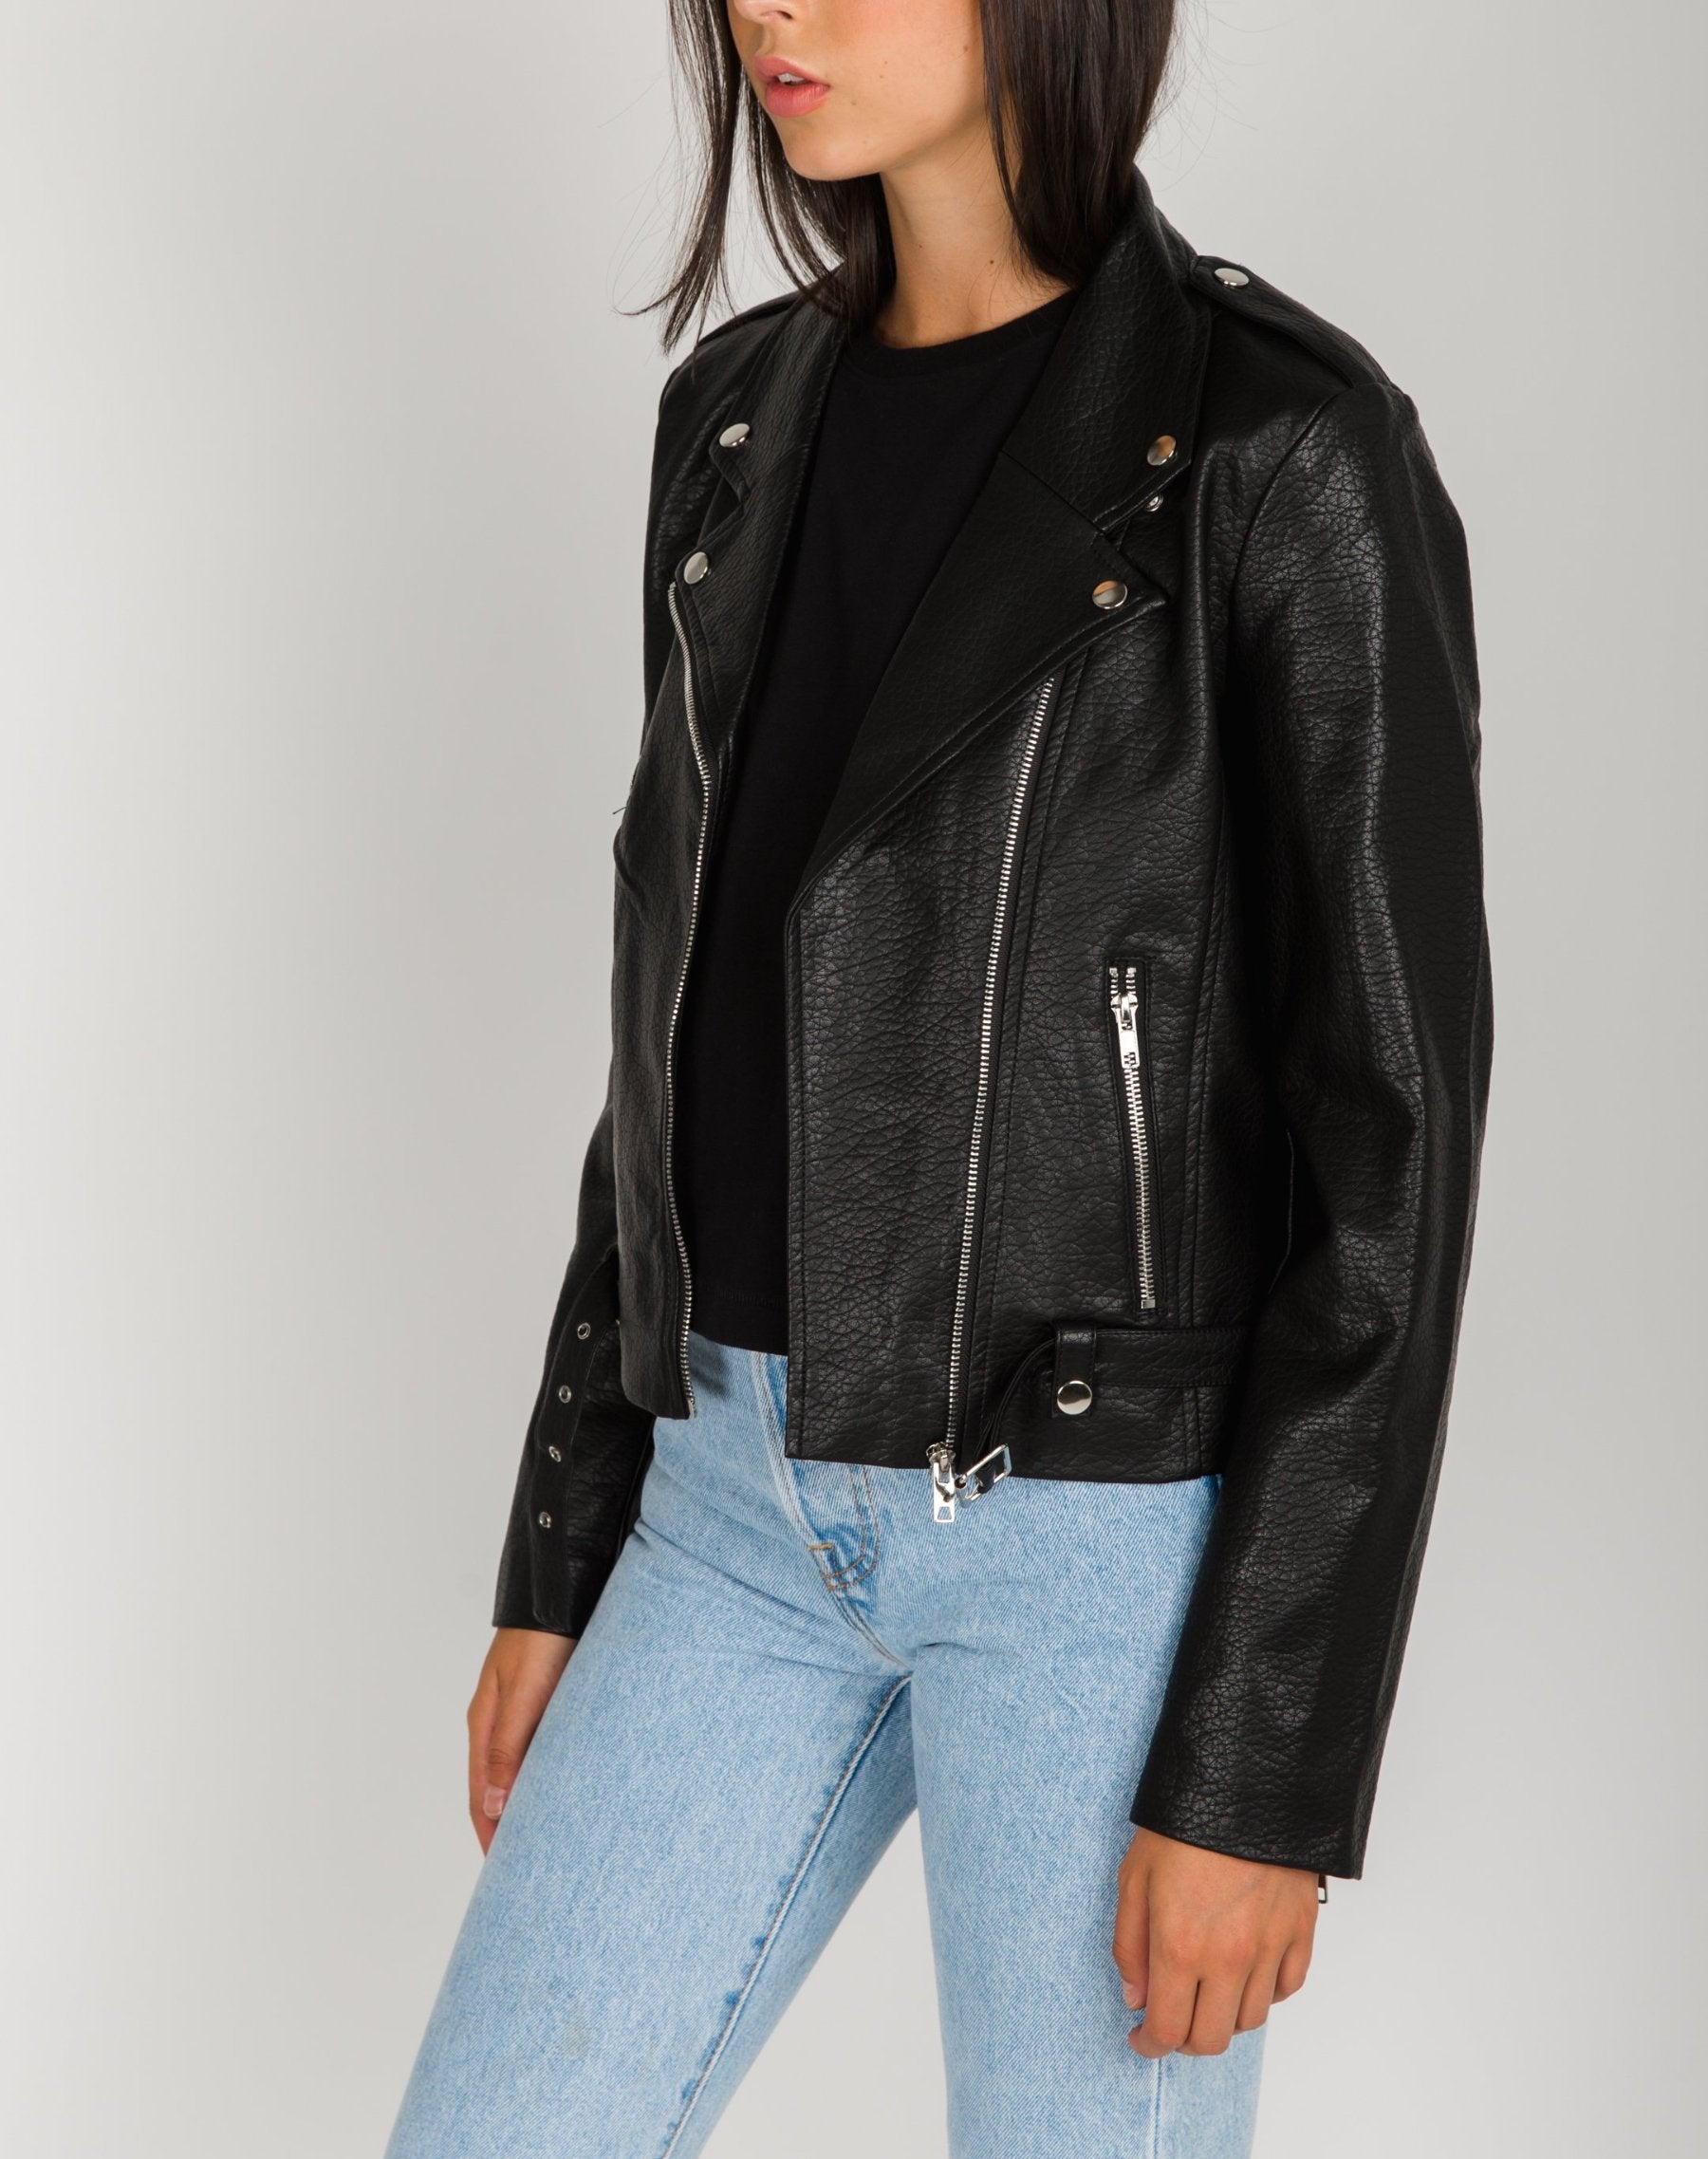 Left side photo of the Florence vegan leather moto jacket in black by Brunette the Label.